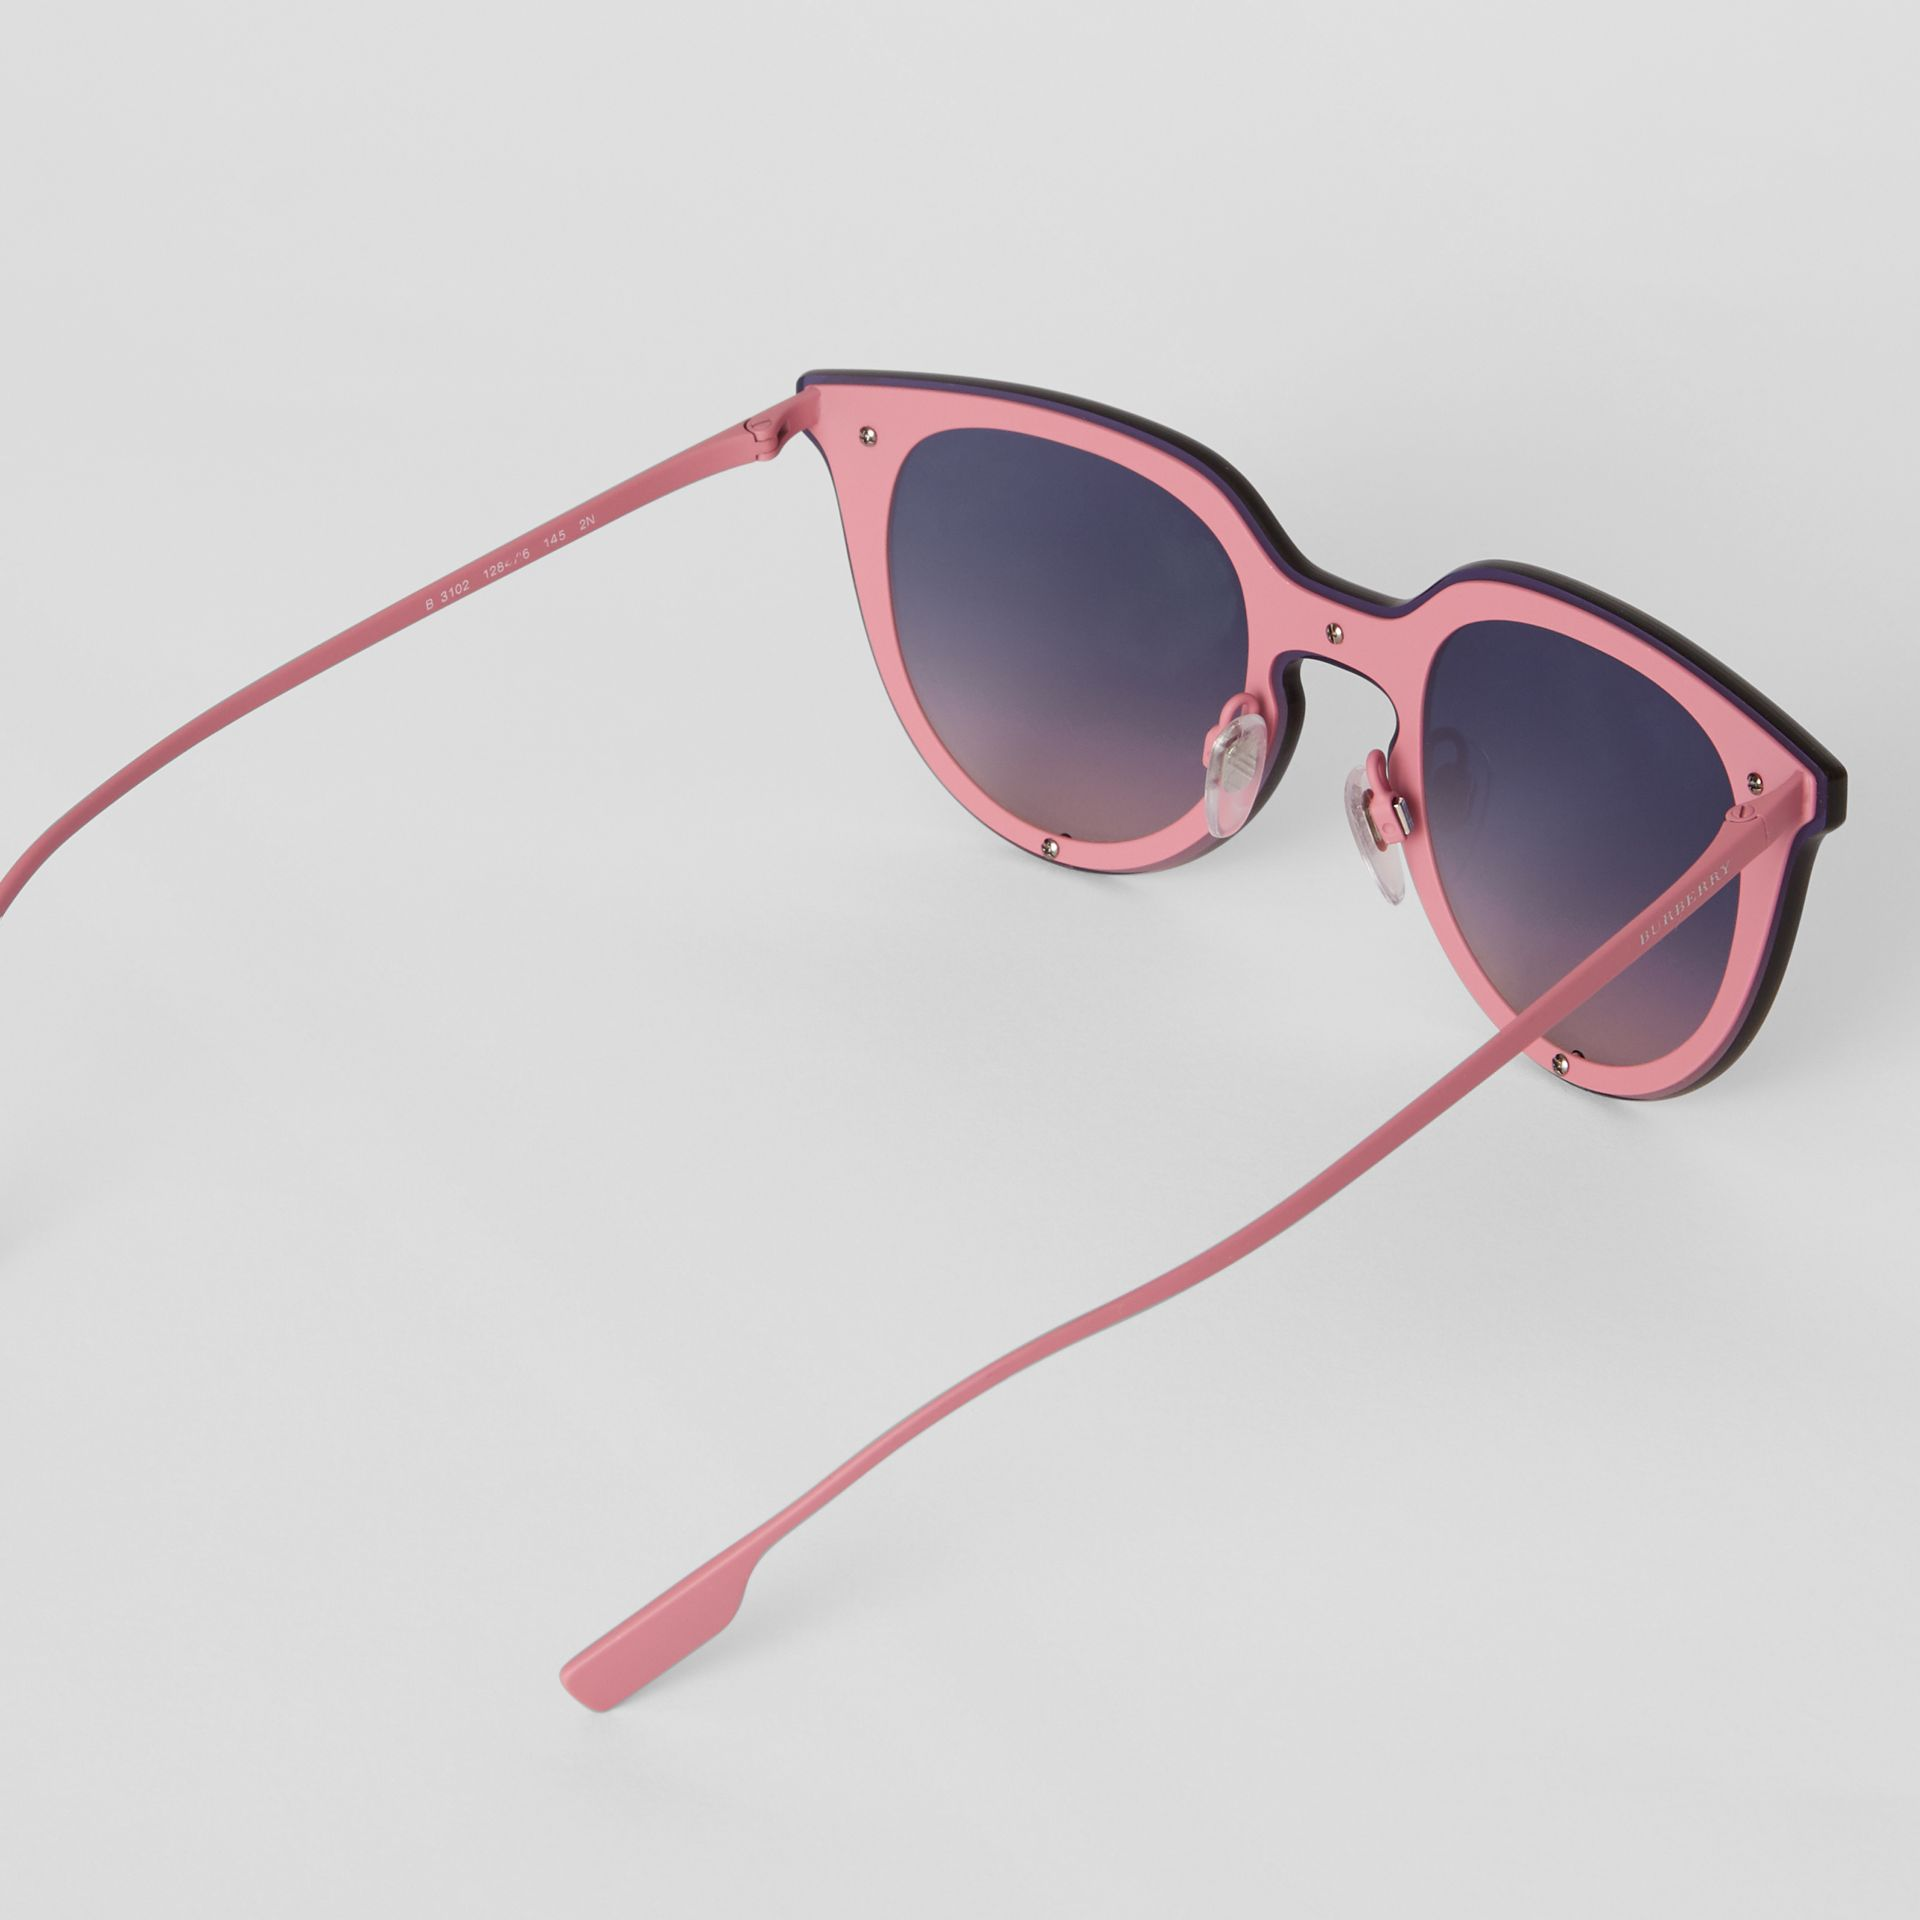 Keyhole Round Frame Shield Sunglasses in Pink - Women | Burberry Australia - gallery image 4